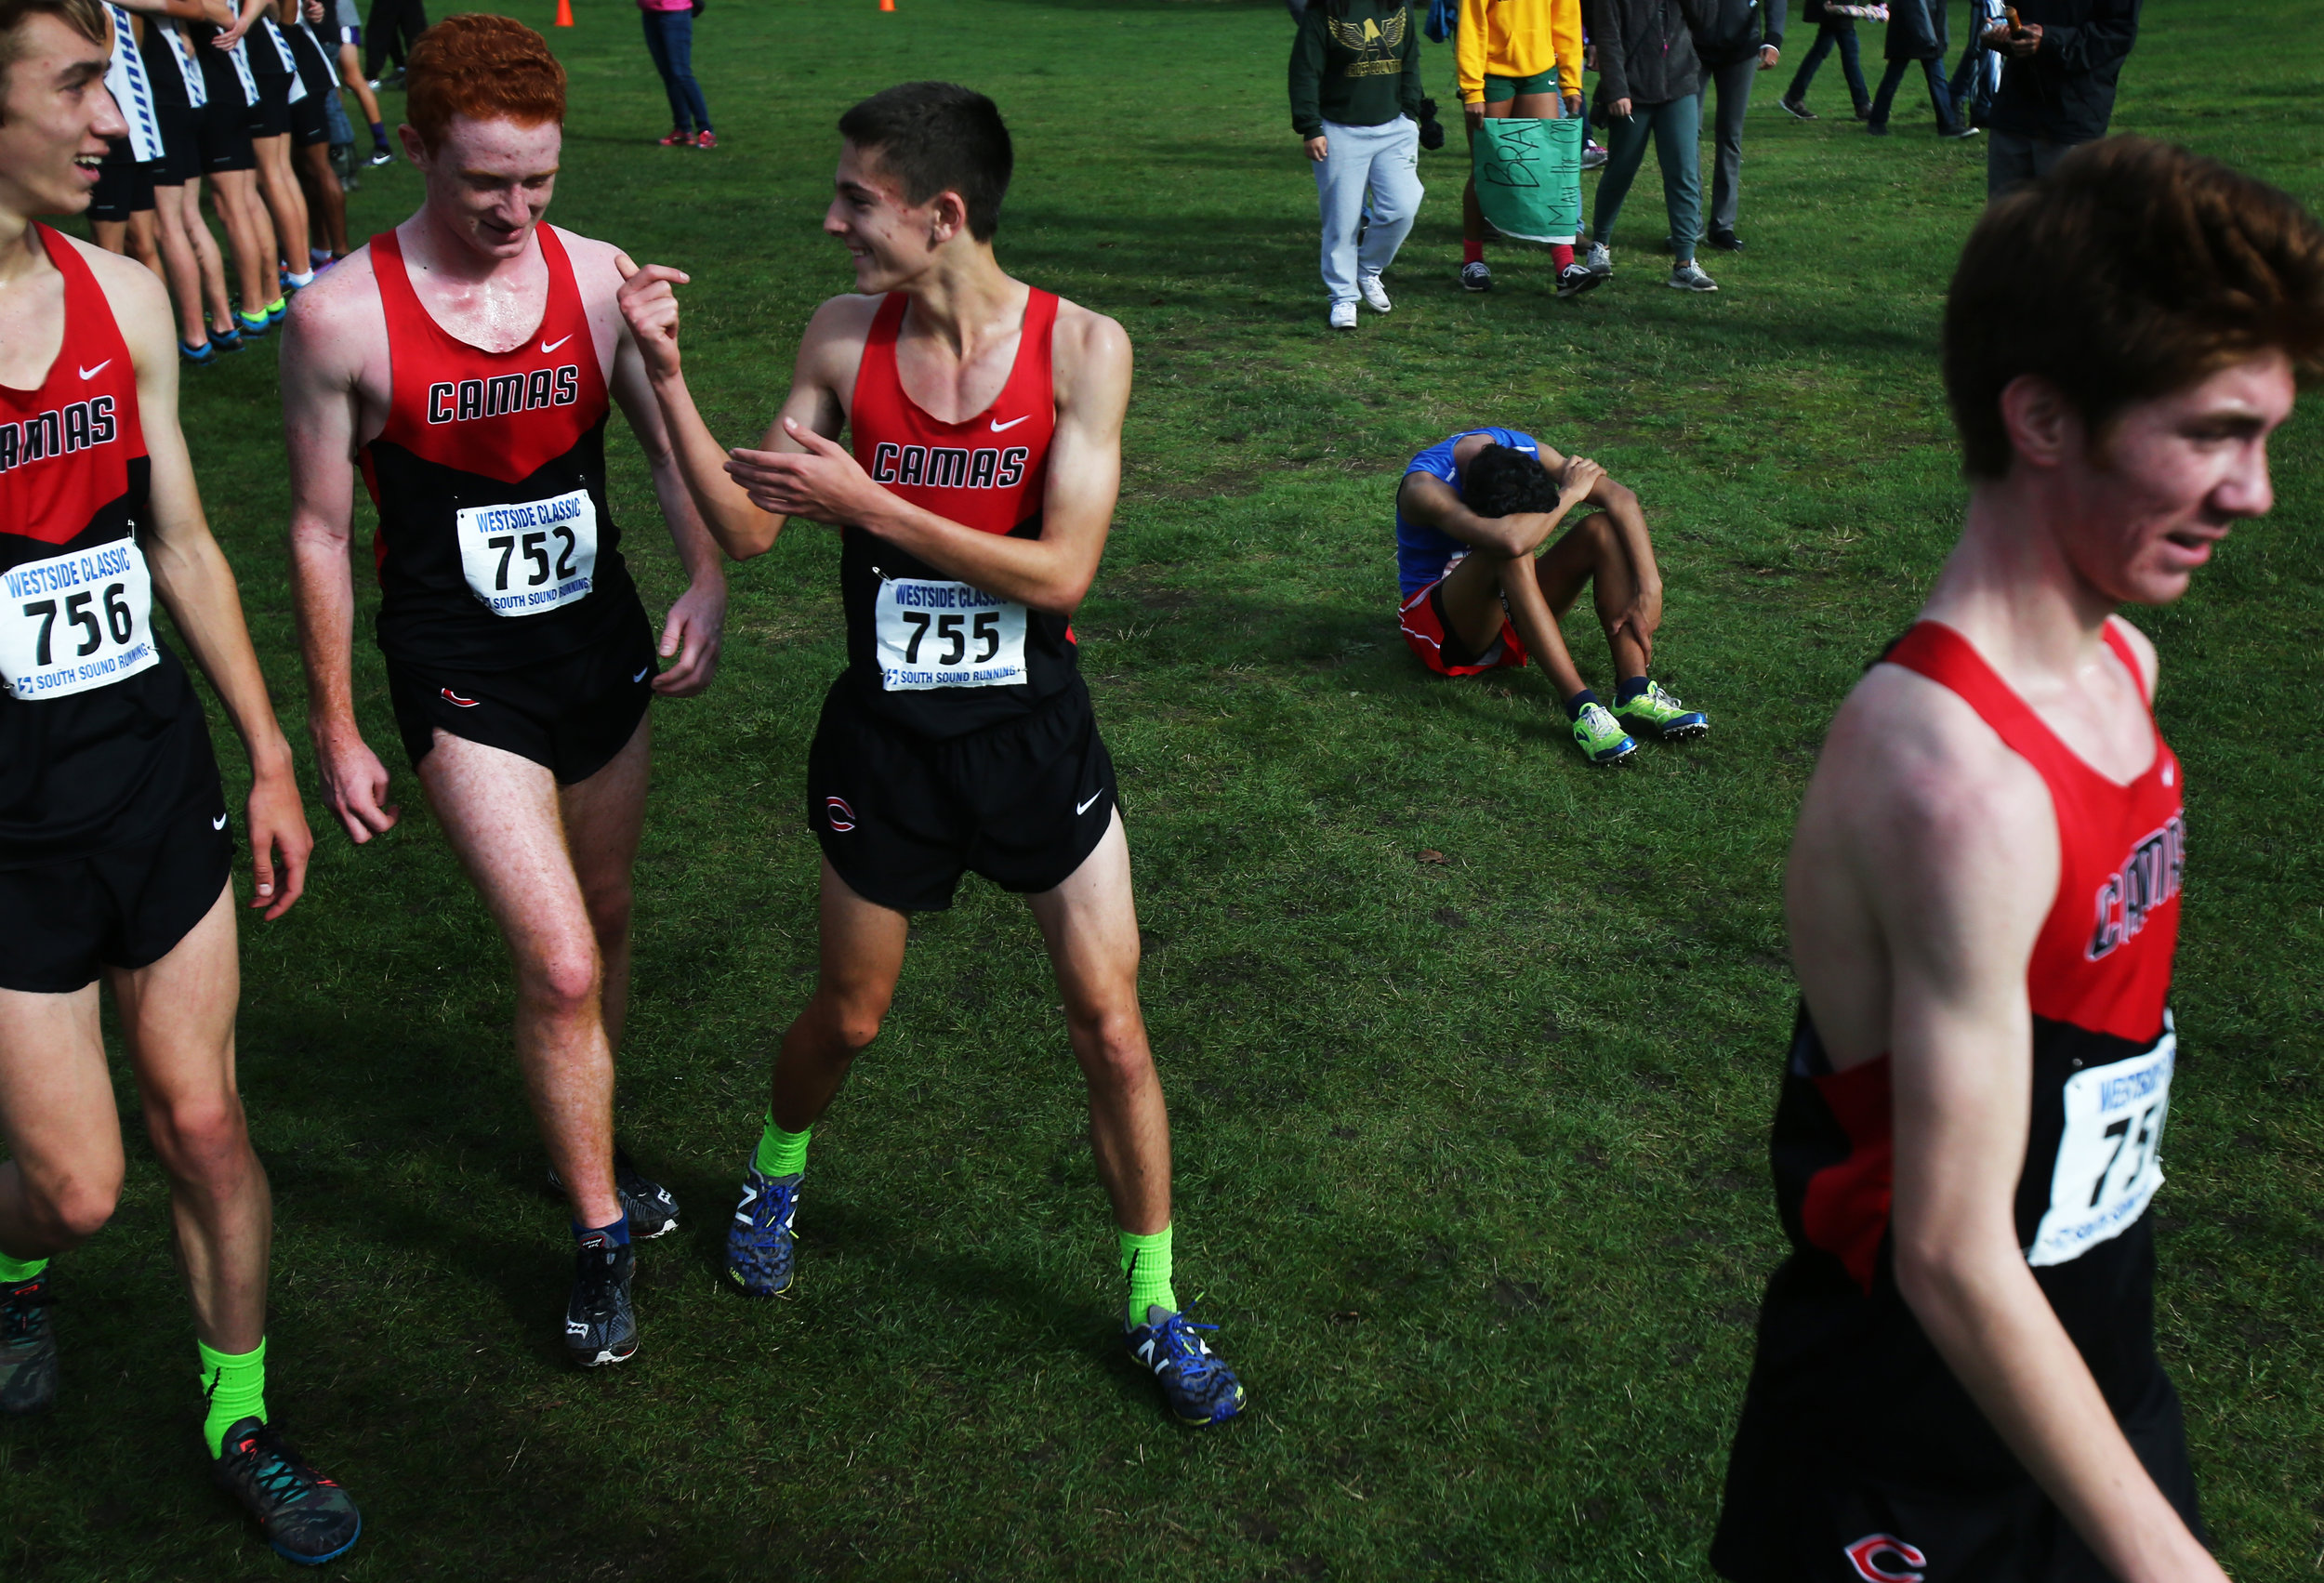 Senior at Cameridian High School Adonis Rosabal gets emotional after his last race during the Westside Classic District cross country meet at the American Lake Golf Course in Lakewood on Saturday, October 29, 2016.